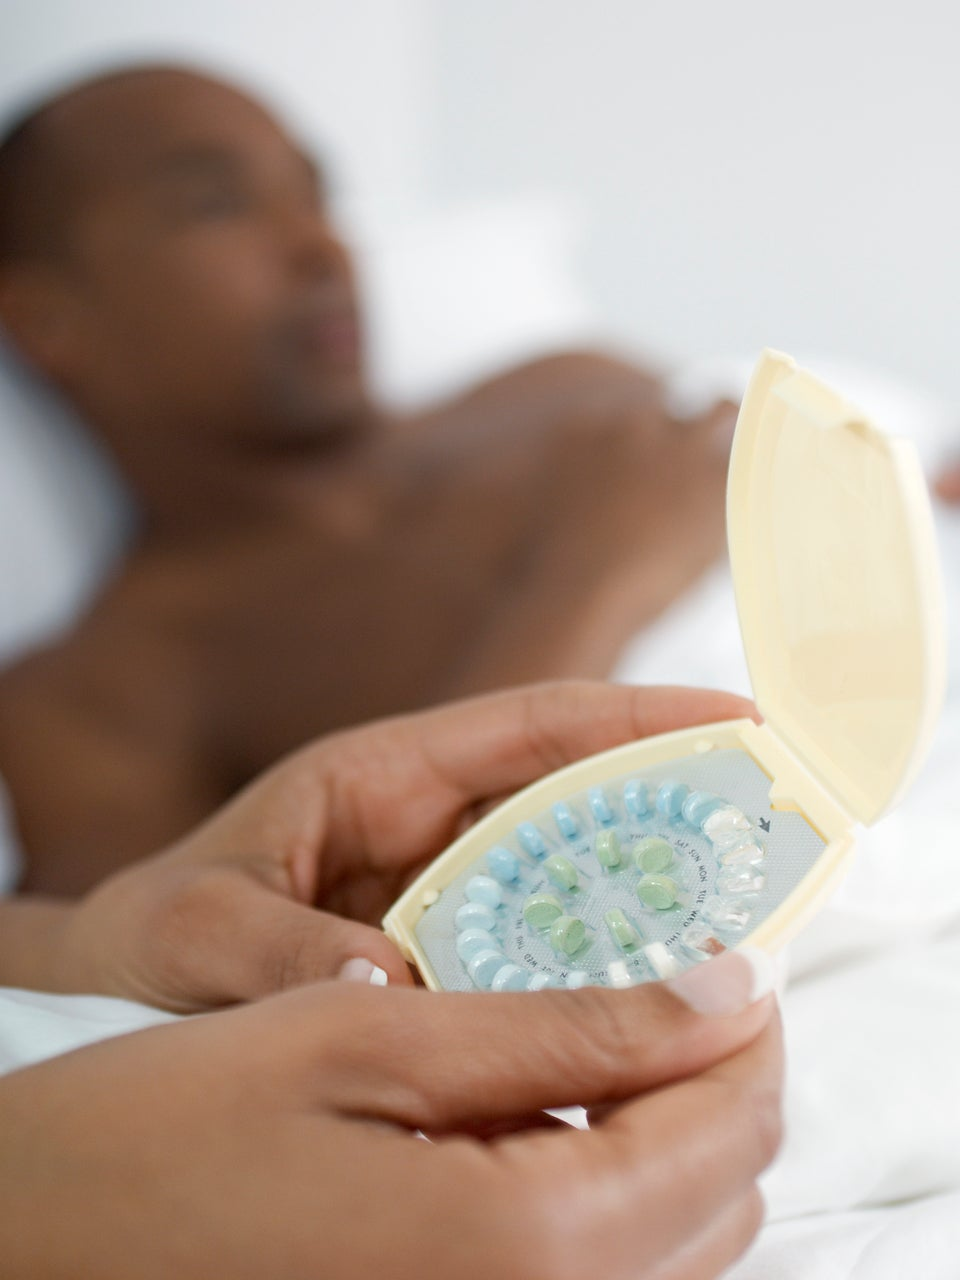 Real Talk: Why Aren't More Men Defending Birth Control?